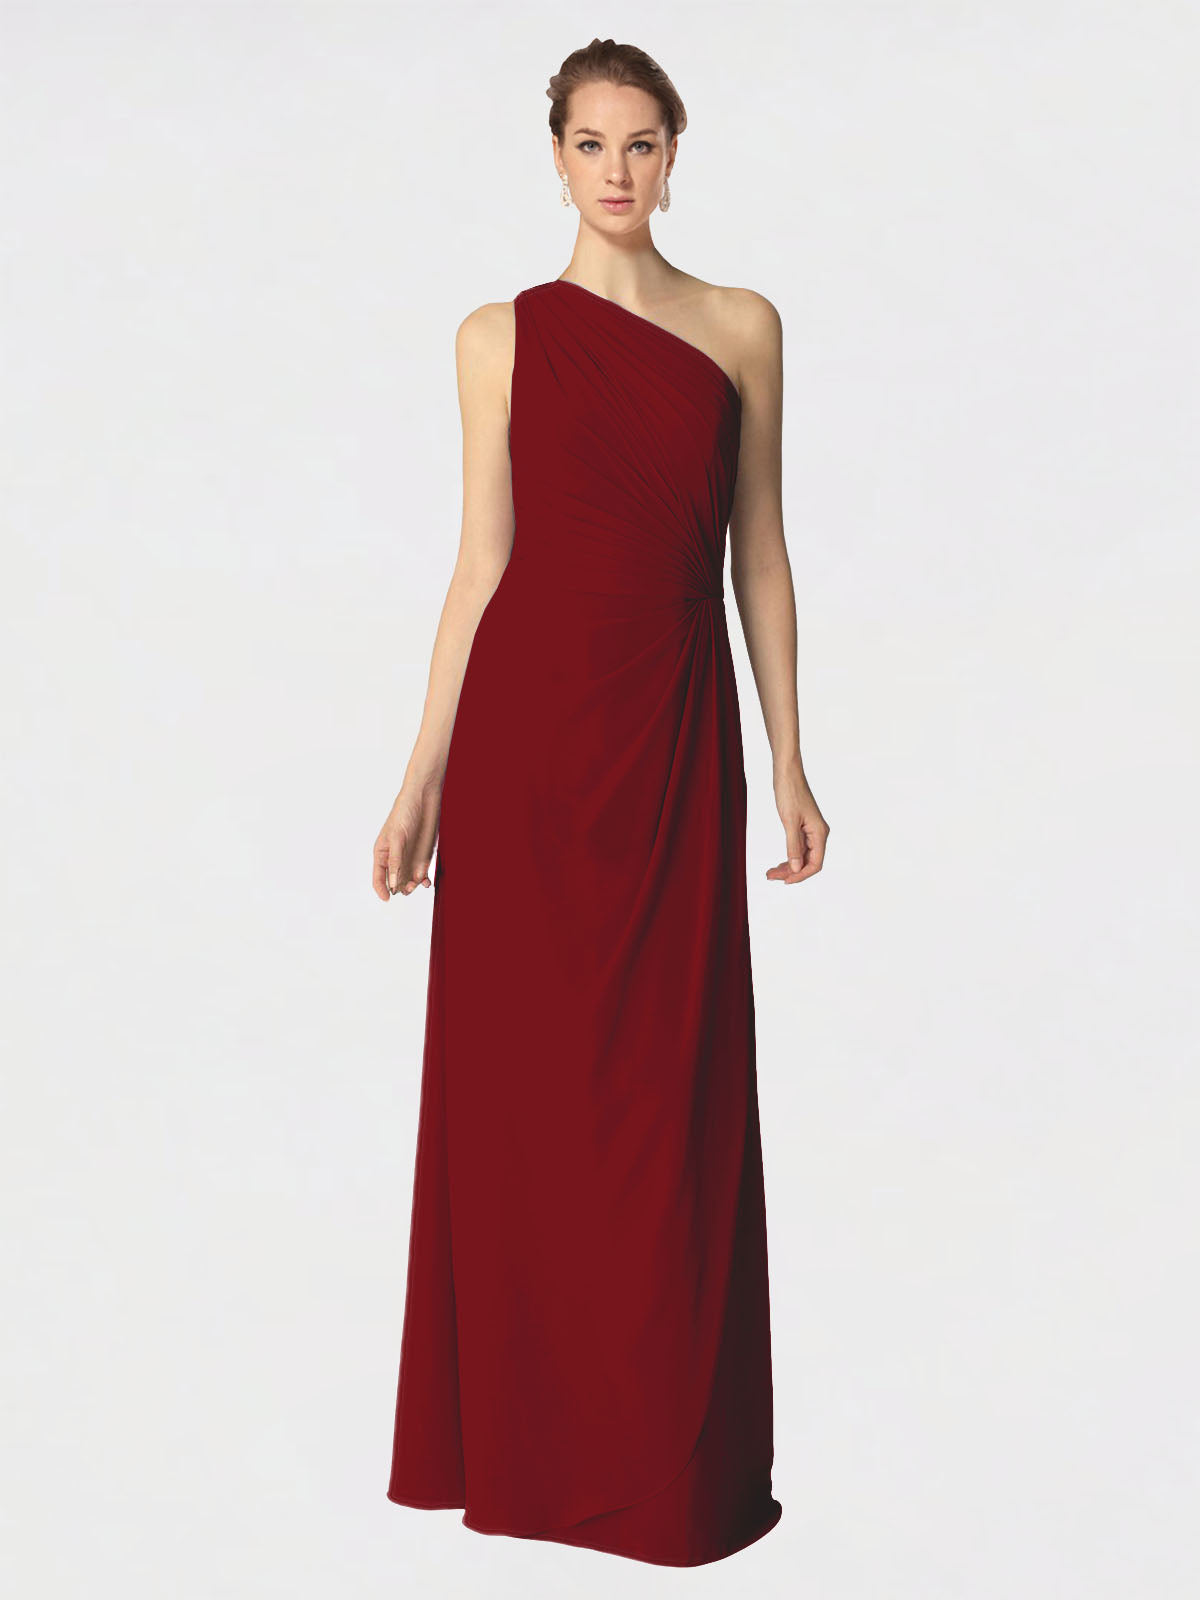 Long A-Line One Shoulder Sleeveless Burgundy Chiffon Bridesmaid Dress Aurora